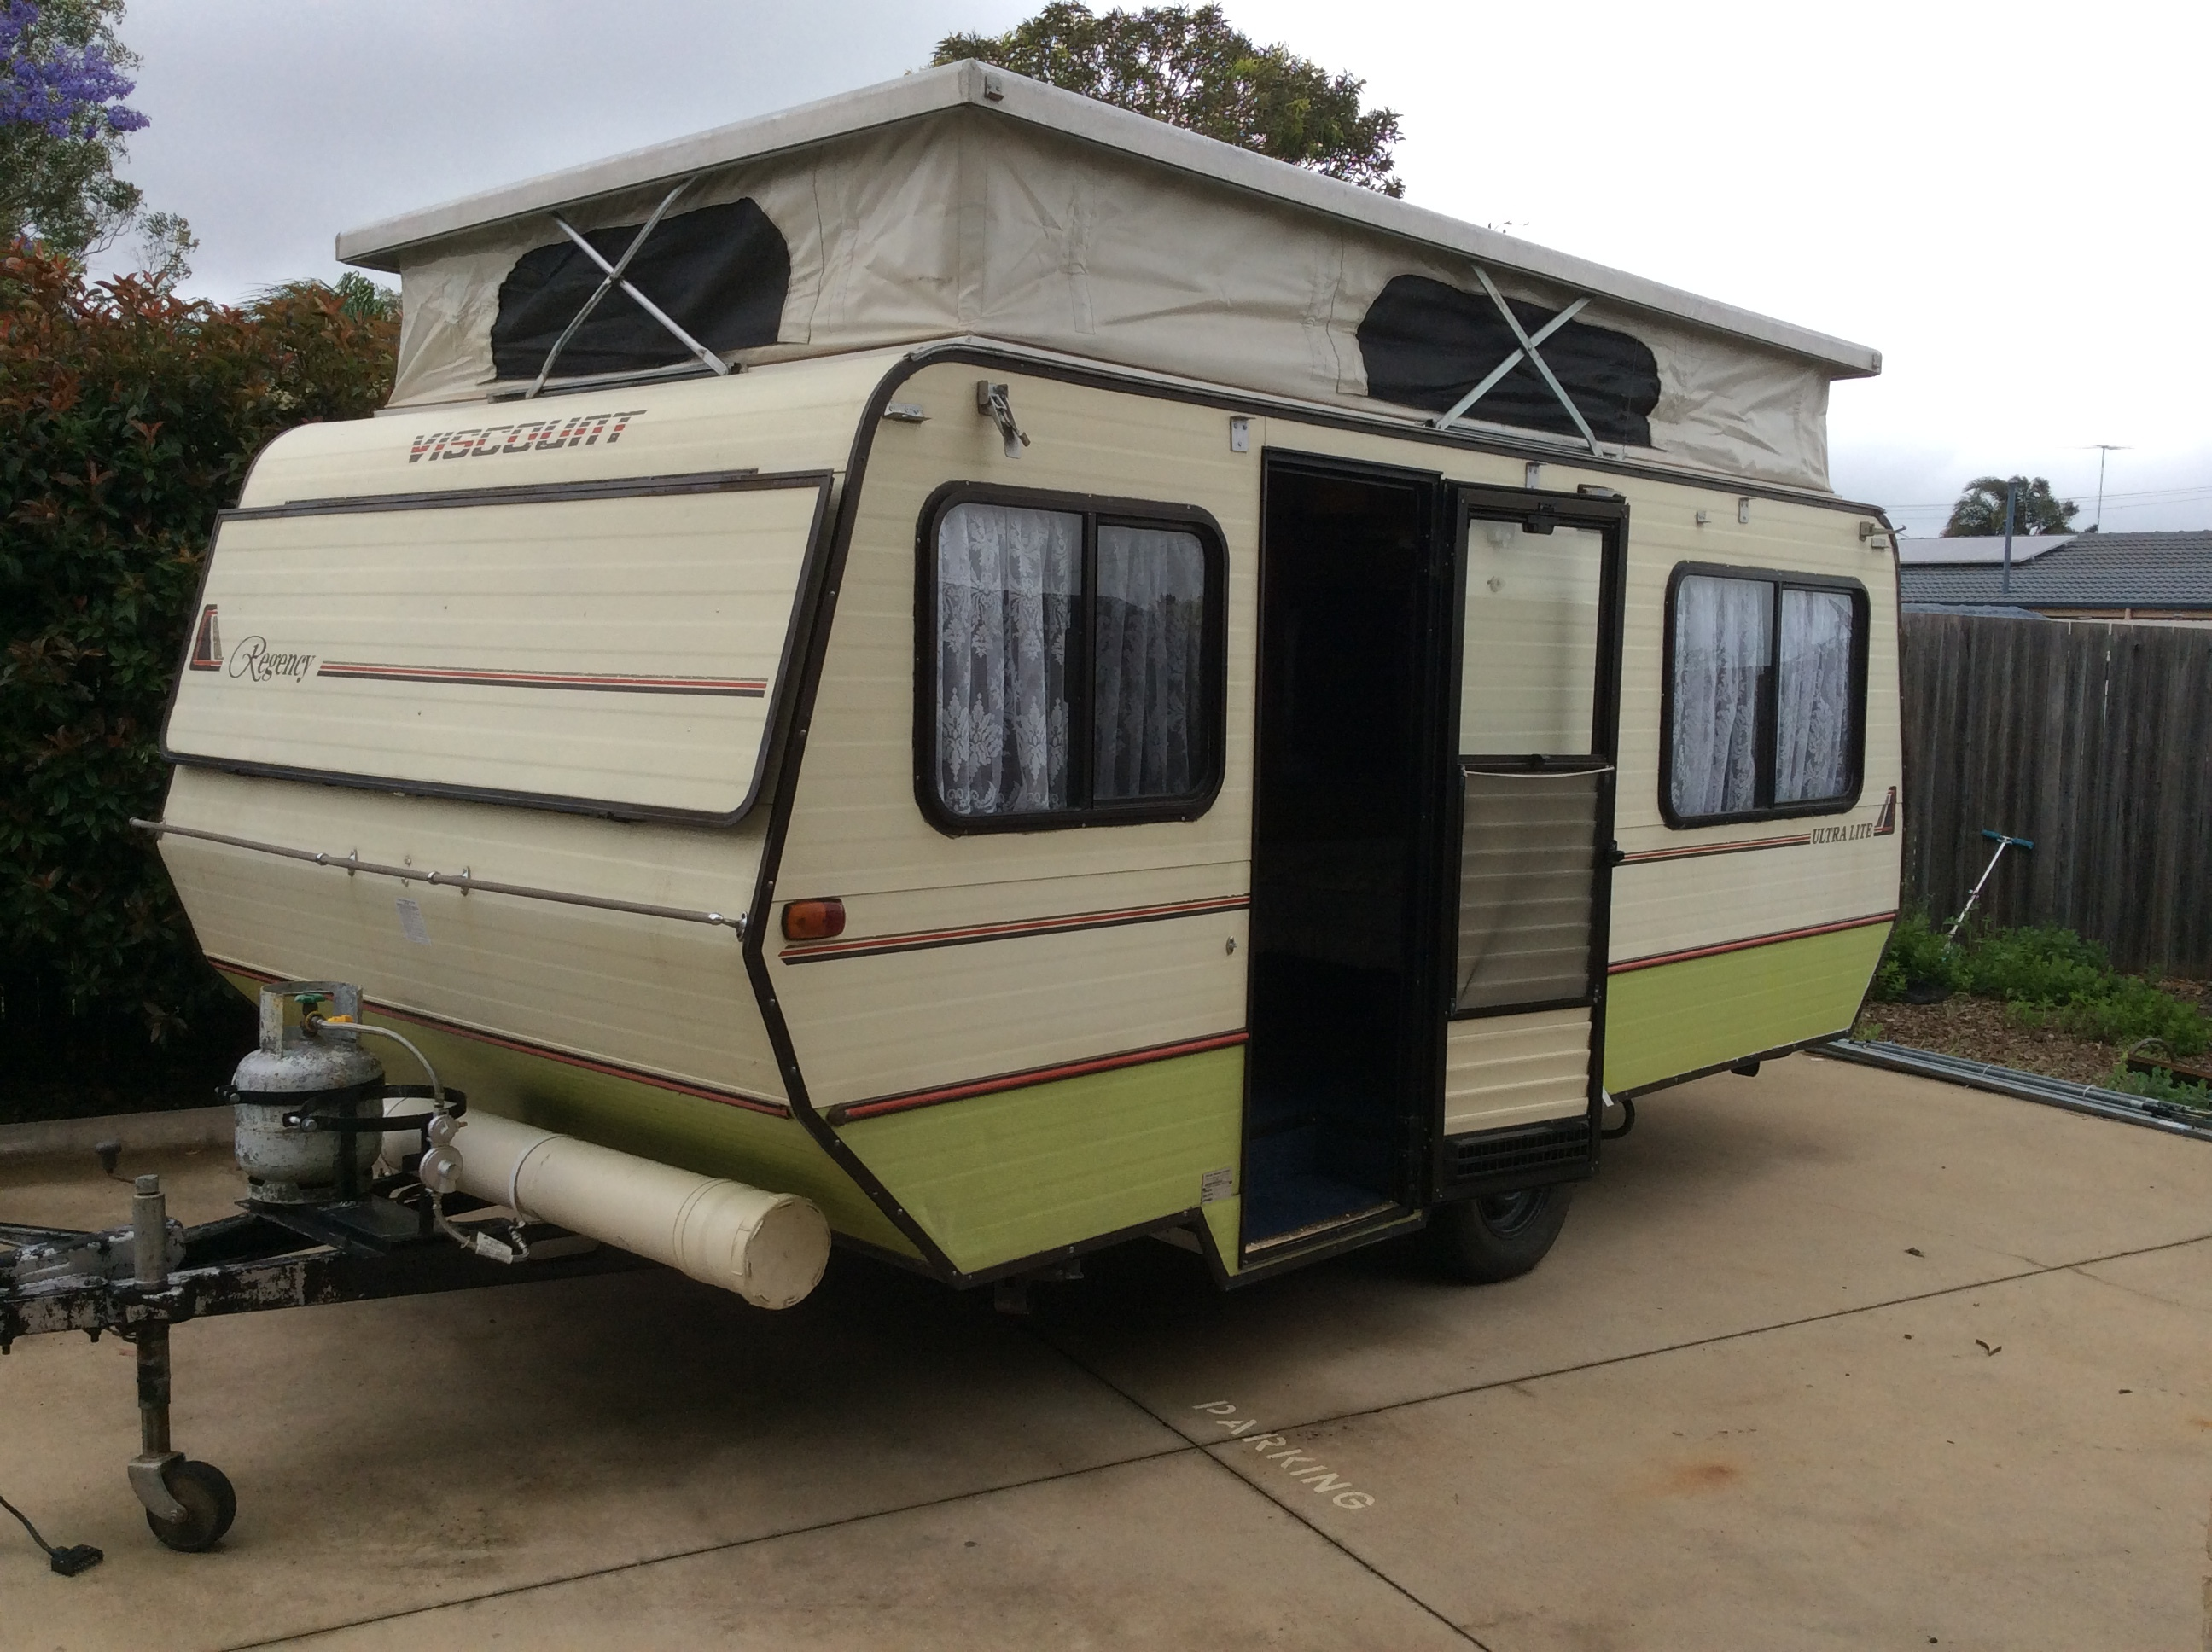 Viscount Ultralite Pop Top Caravan.